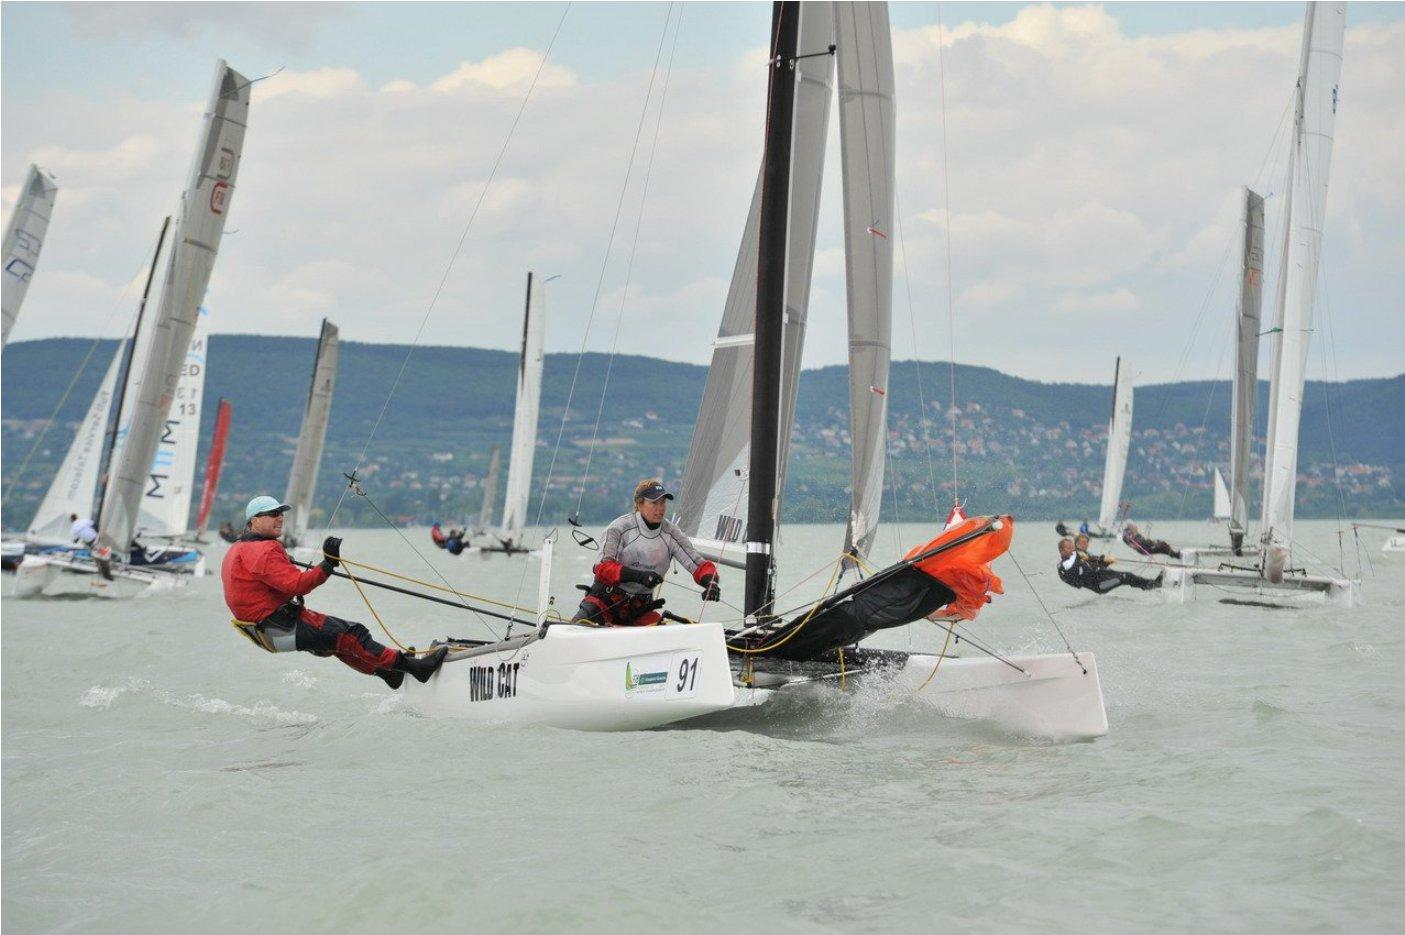 44thBlue Ribbon Regatta In Hungary At Balatonfured, 5 - 7 July